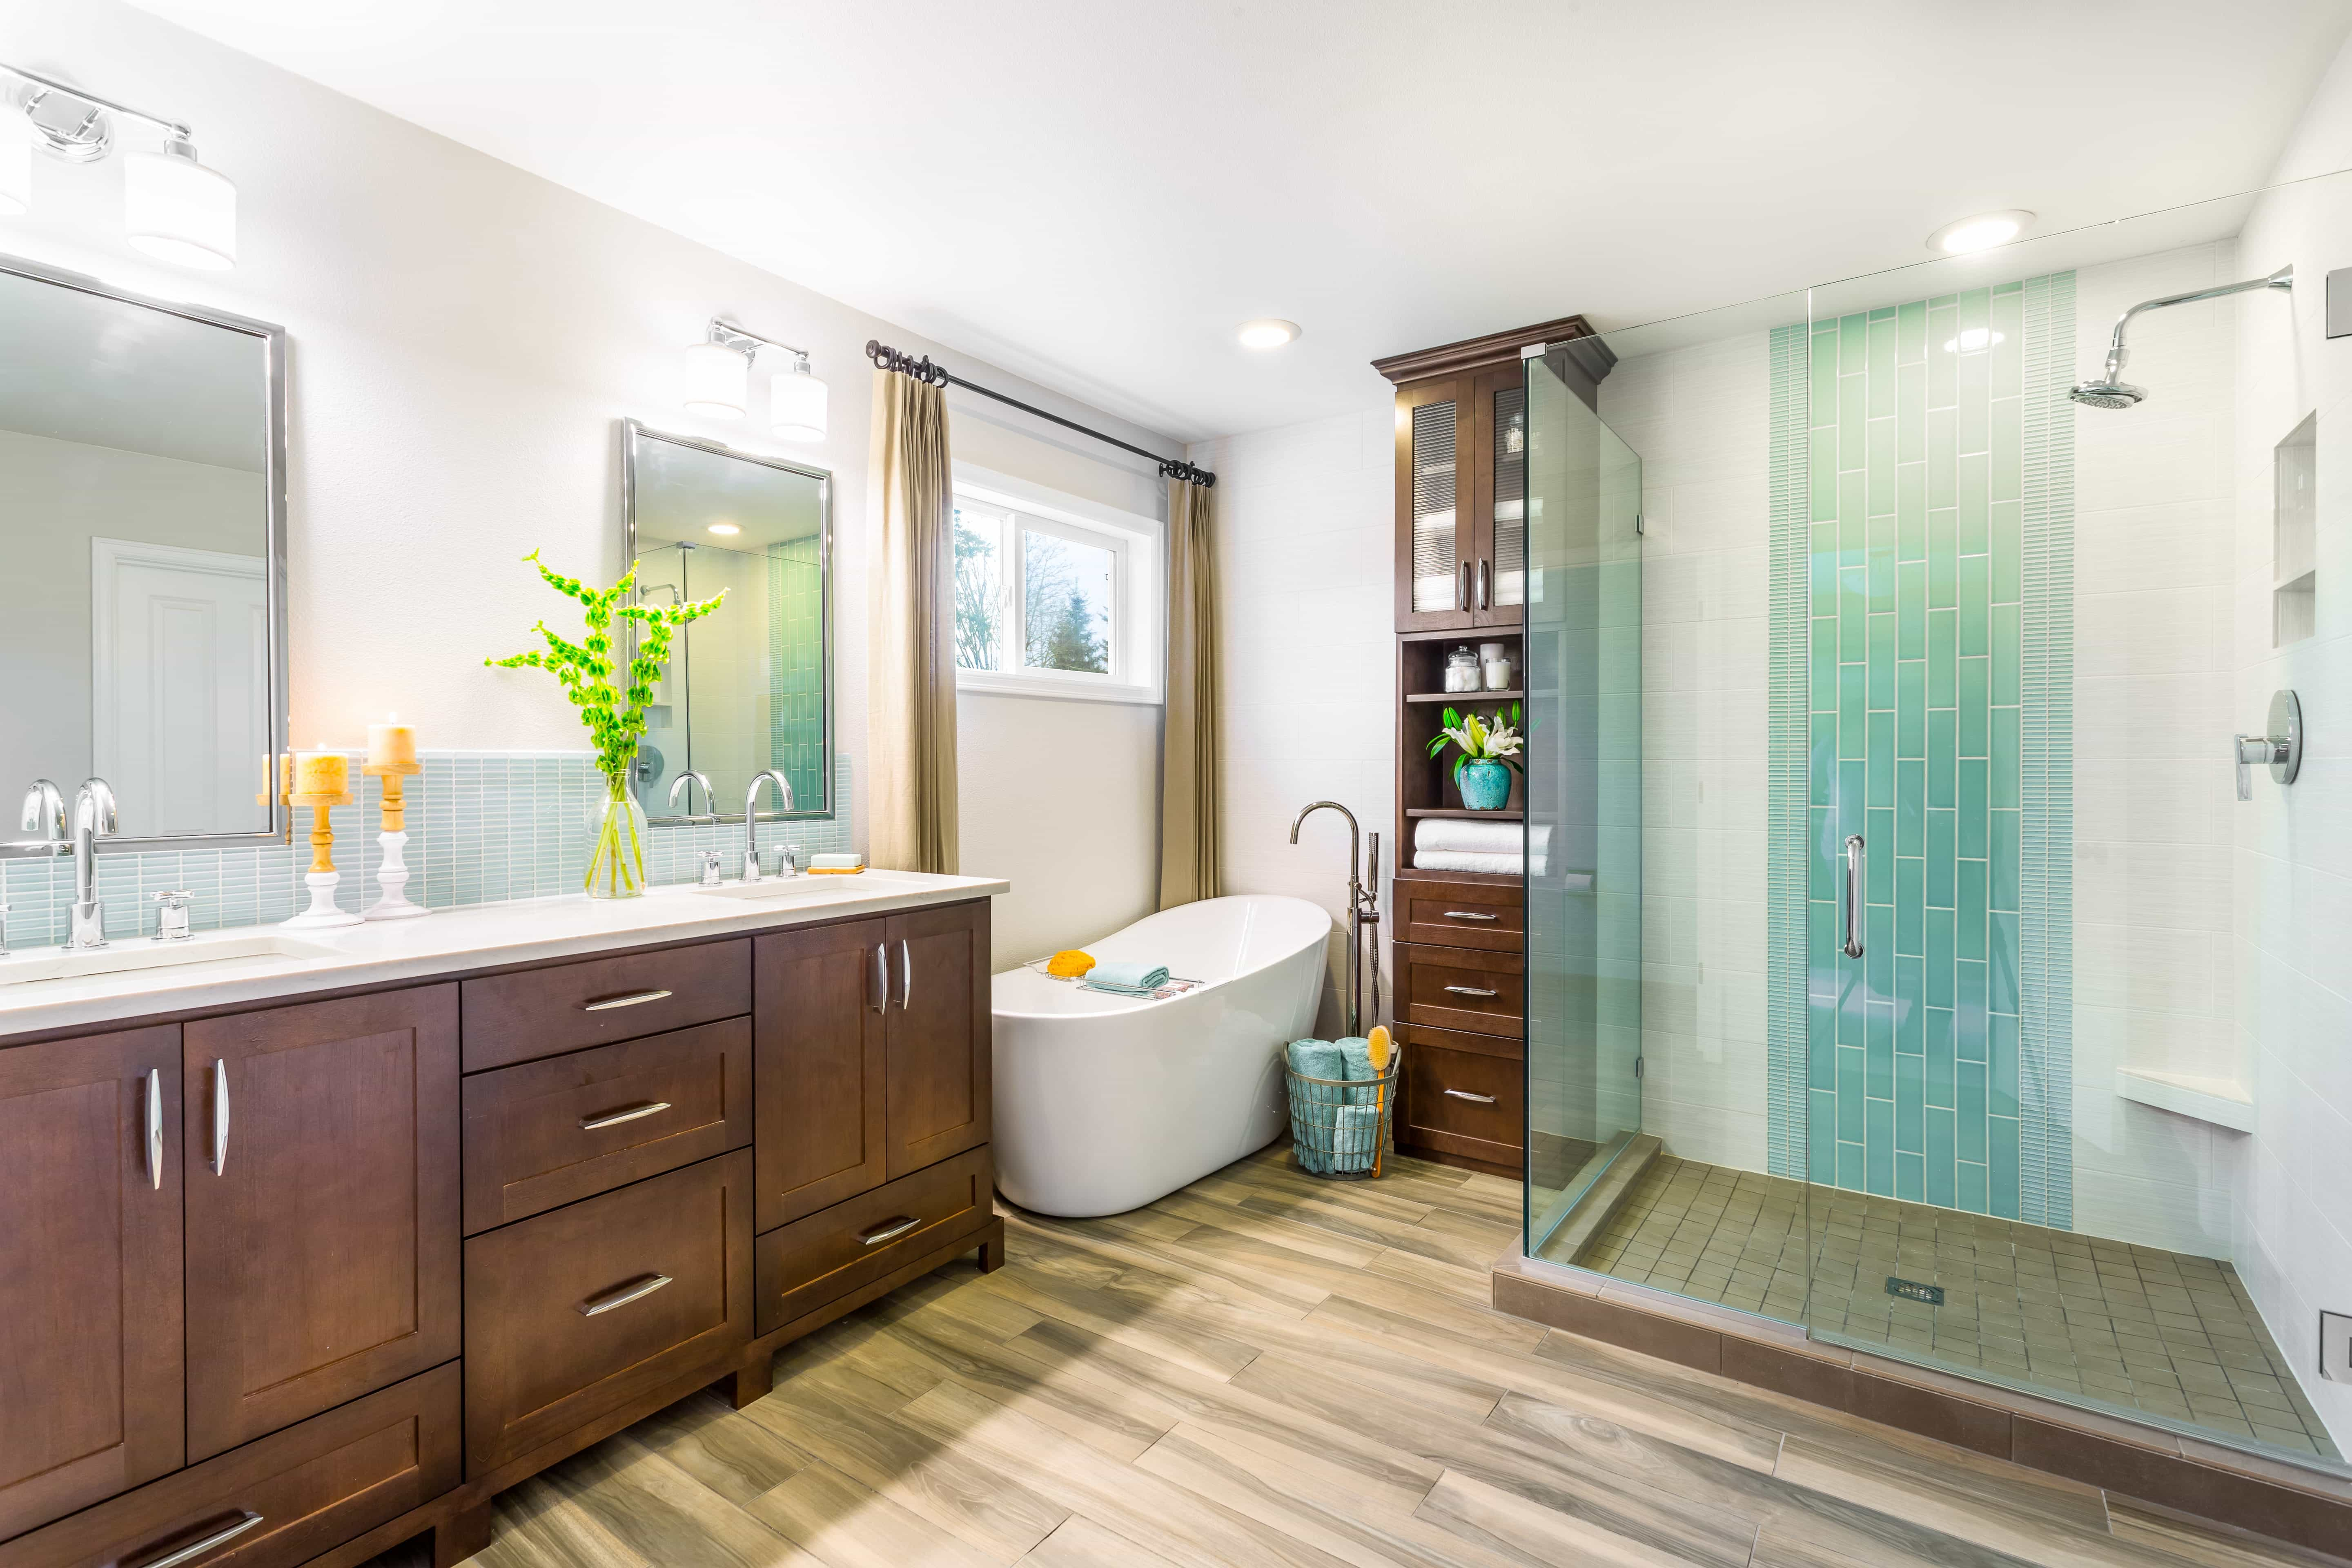 Spa Like Master Bathroom Boasts Glass Enclosed Shower Combo (Image 14 of 16)